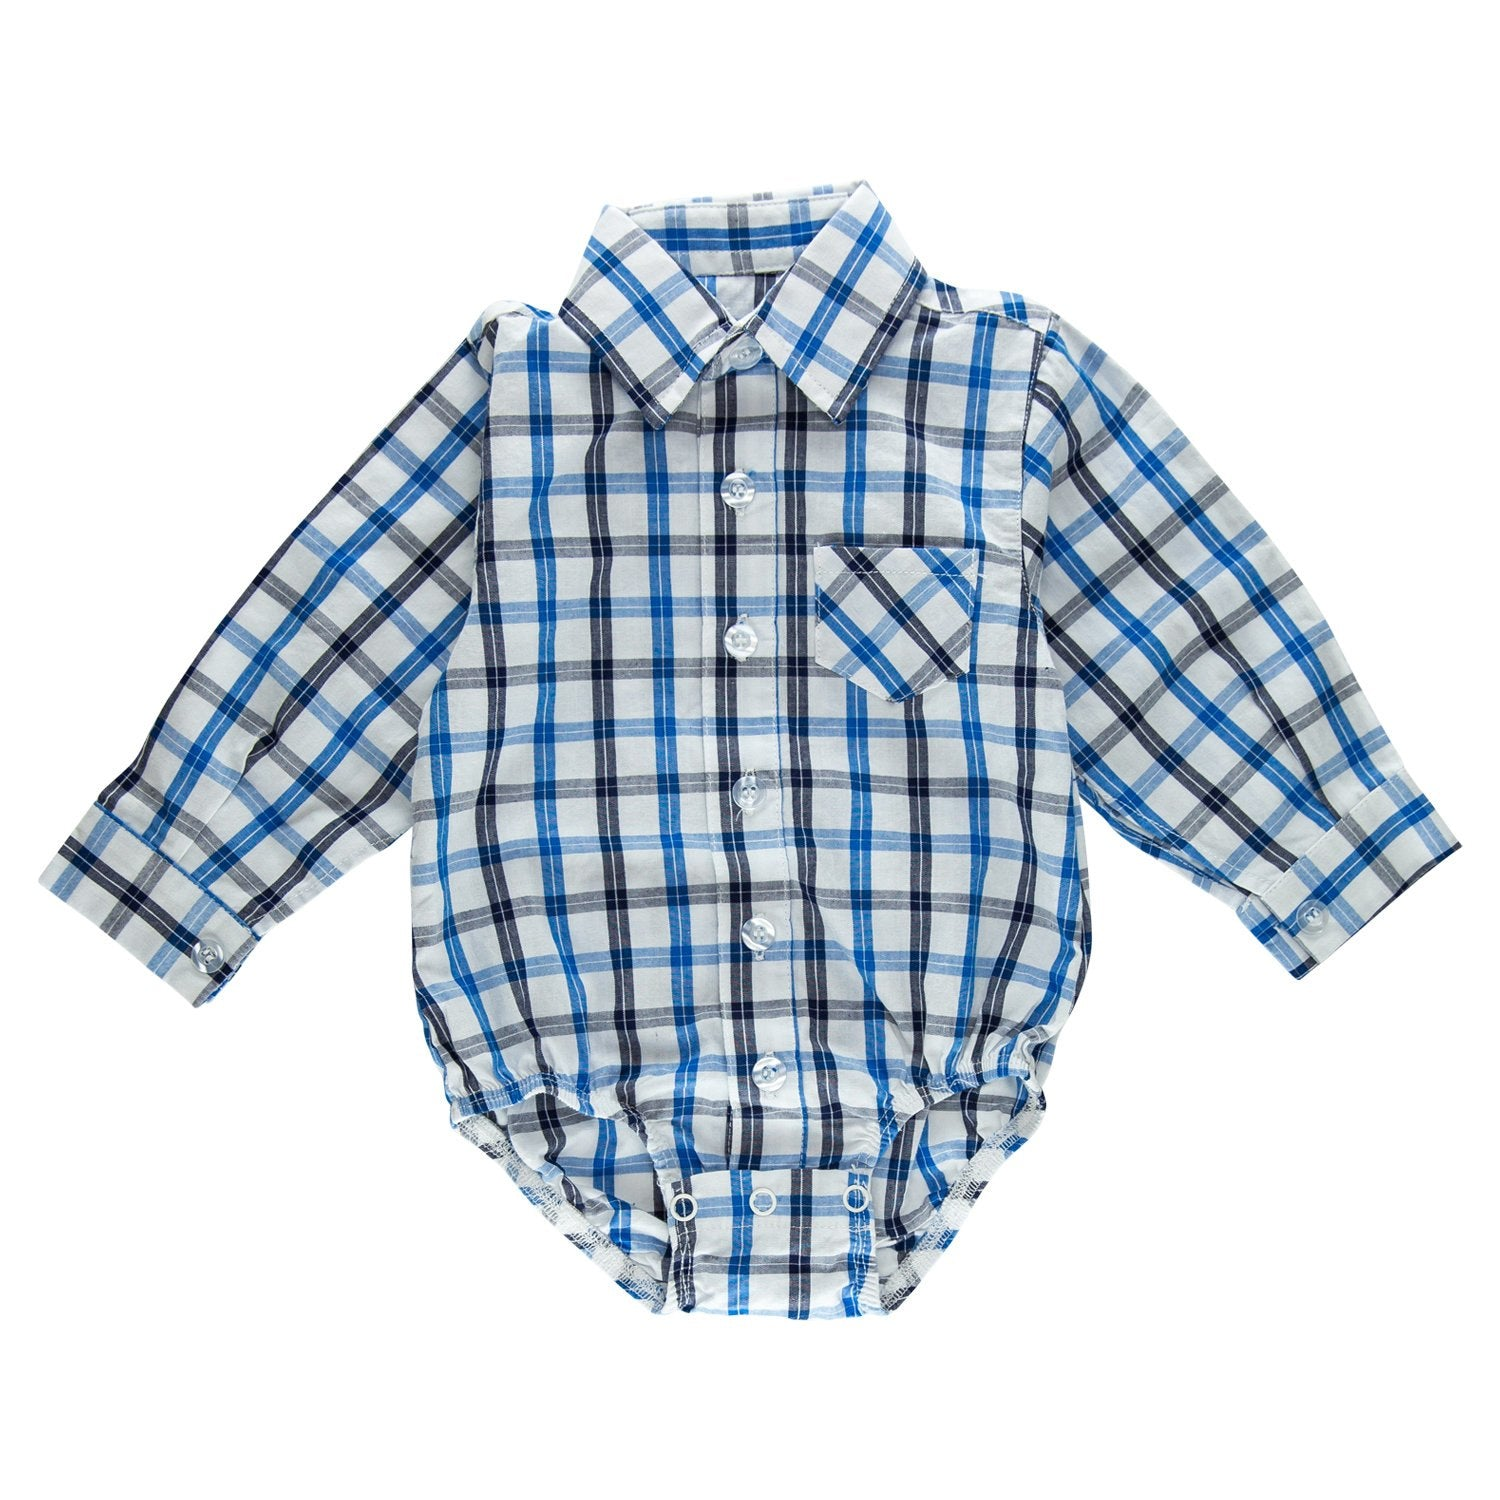 lsdso-blp-blue-plaid-long-sleeve-dress-shirt-bodysuit-front-product.jpg